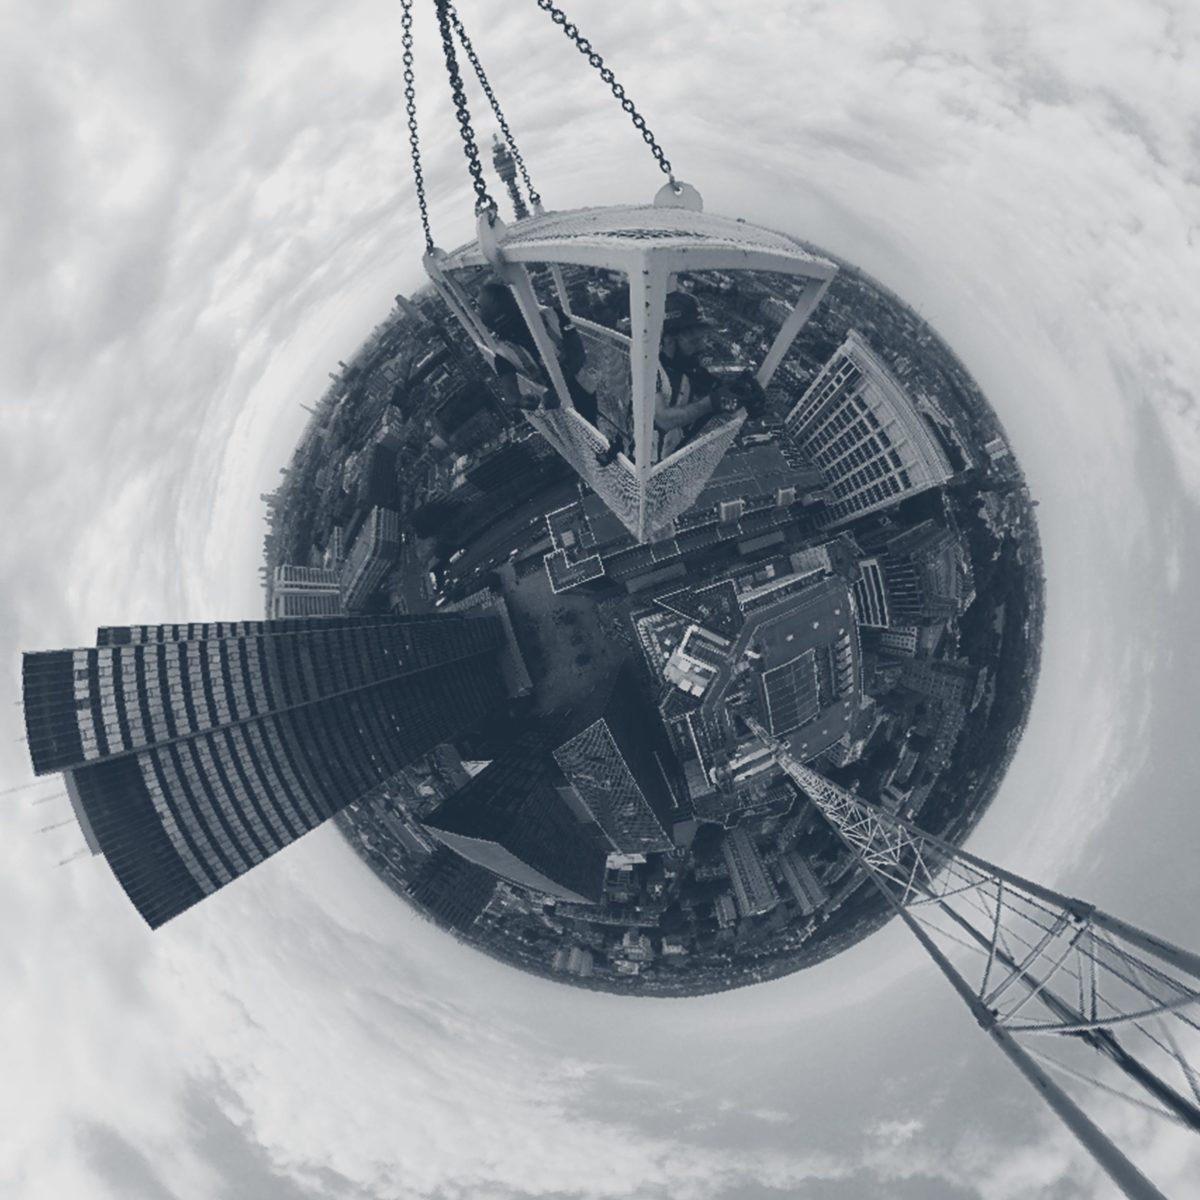 A 360 degree camera view of a construction site seen from on top of a crane, looking over central London.